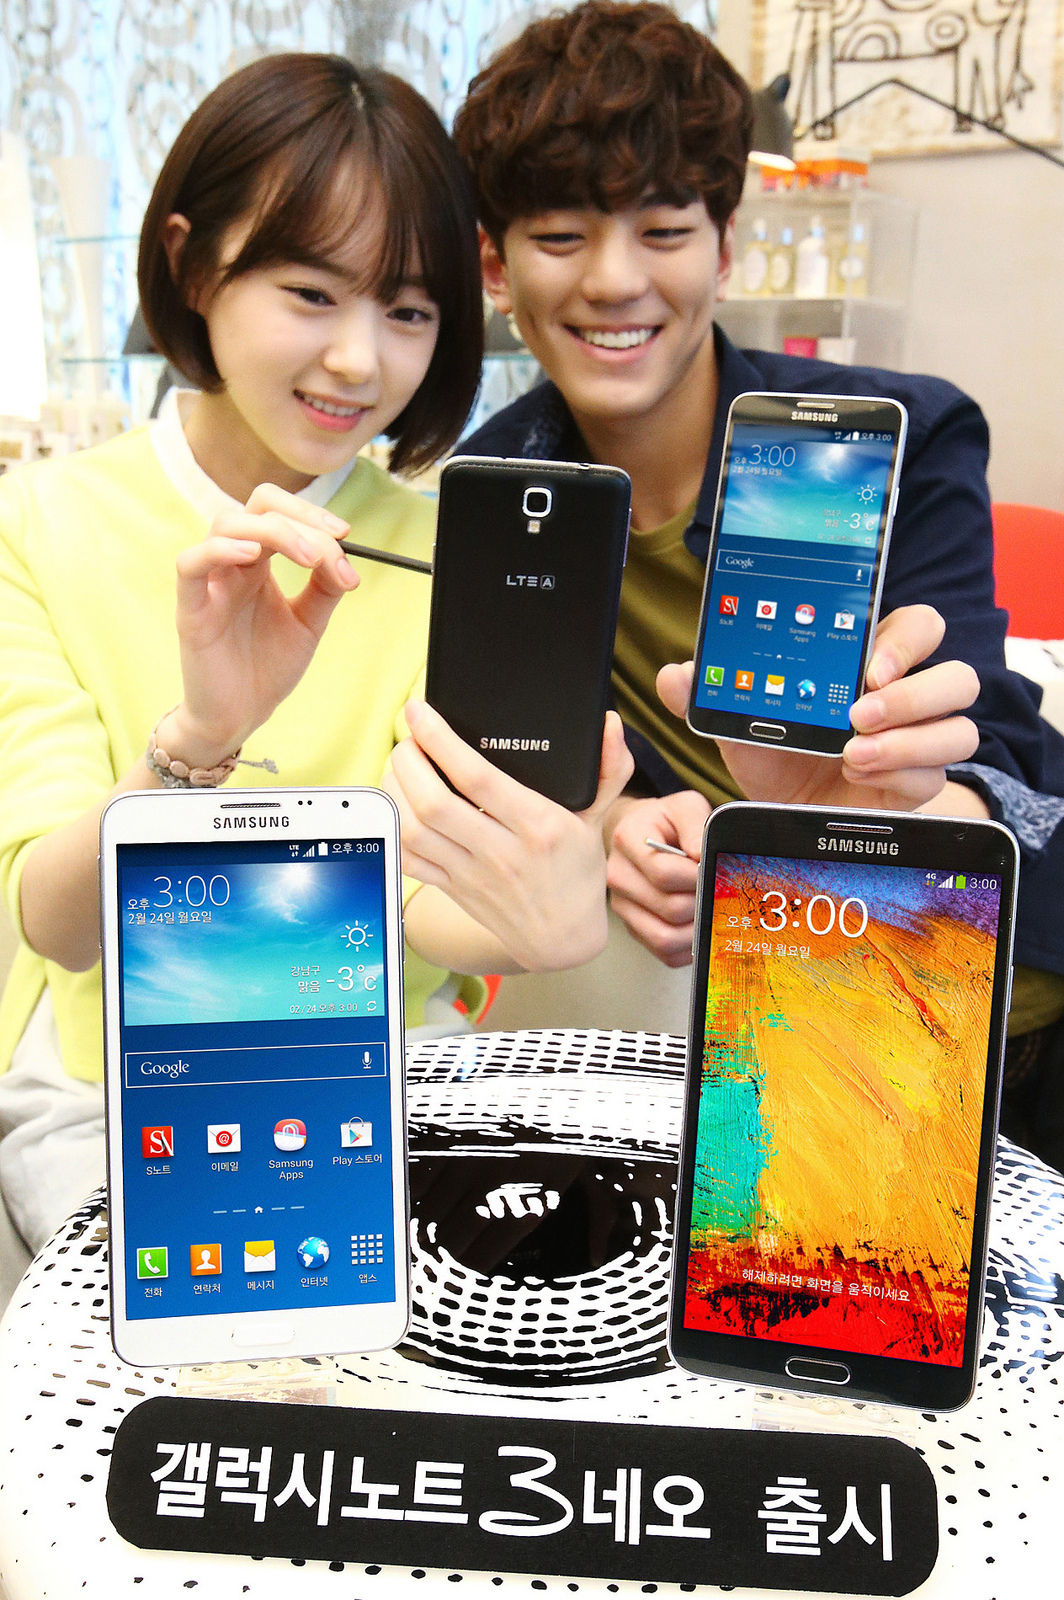 Samsung-launches-the-Galaxy-Note-3-Neo-in-South-Korea (2)